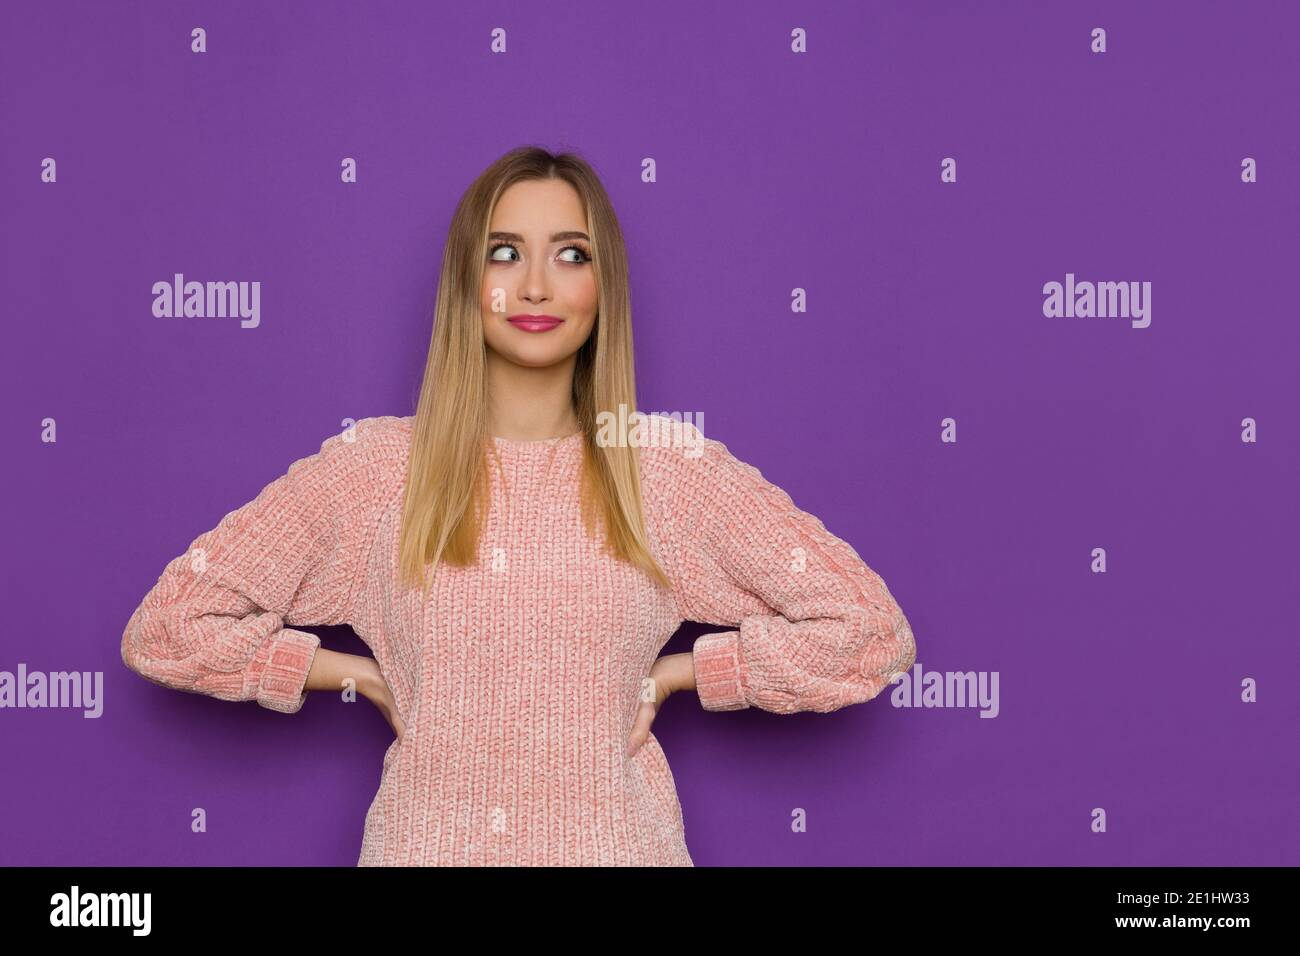 Cute young woman in pink sweater is posing with hands on hip and looking at the side. Waist up studio shot on purple background. Stock Photo